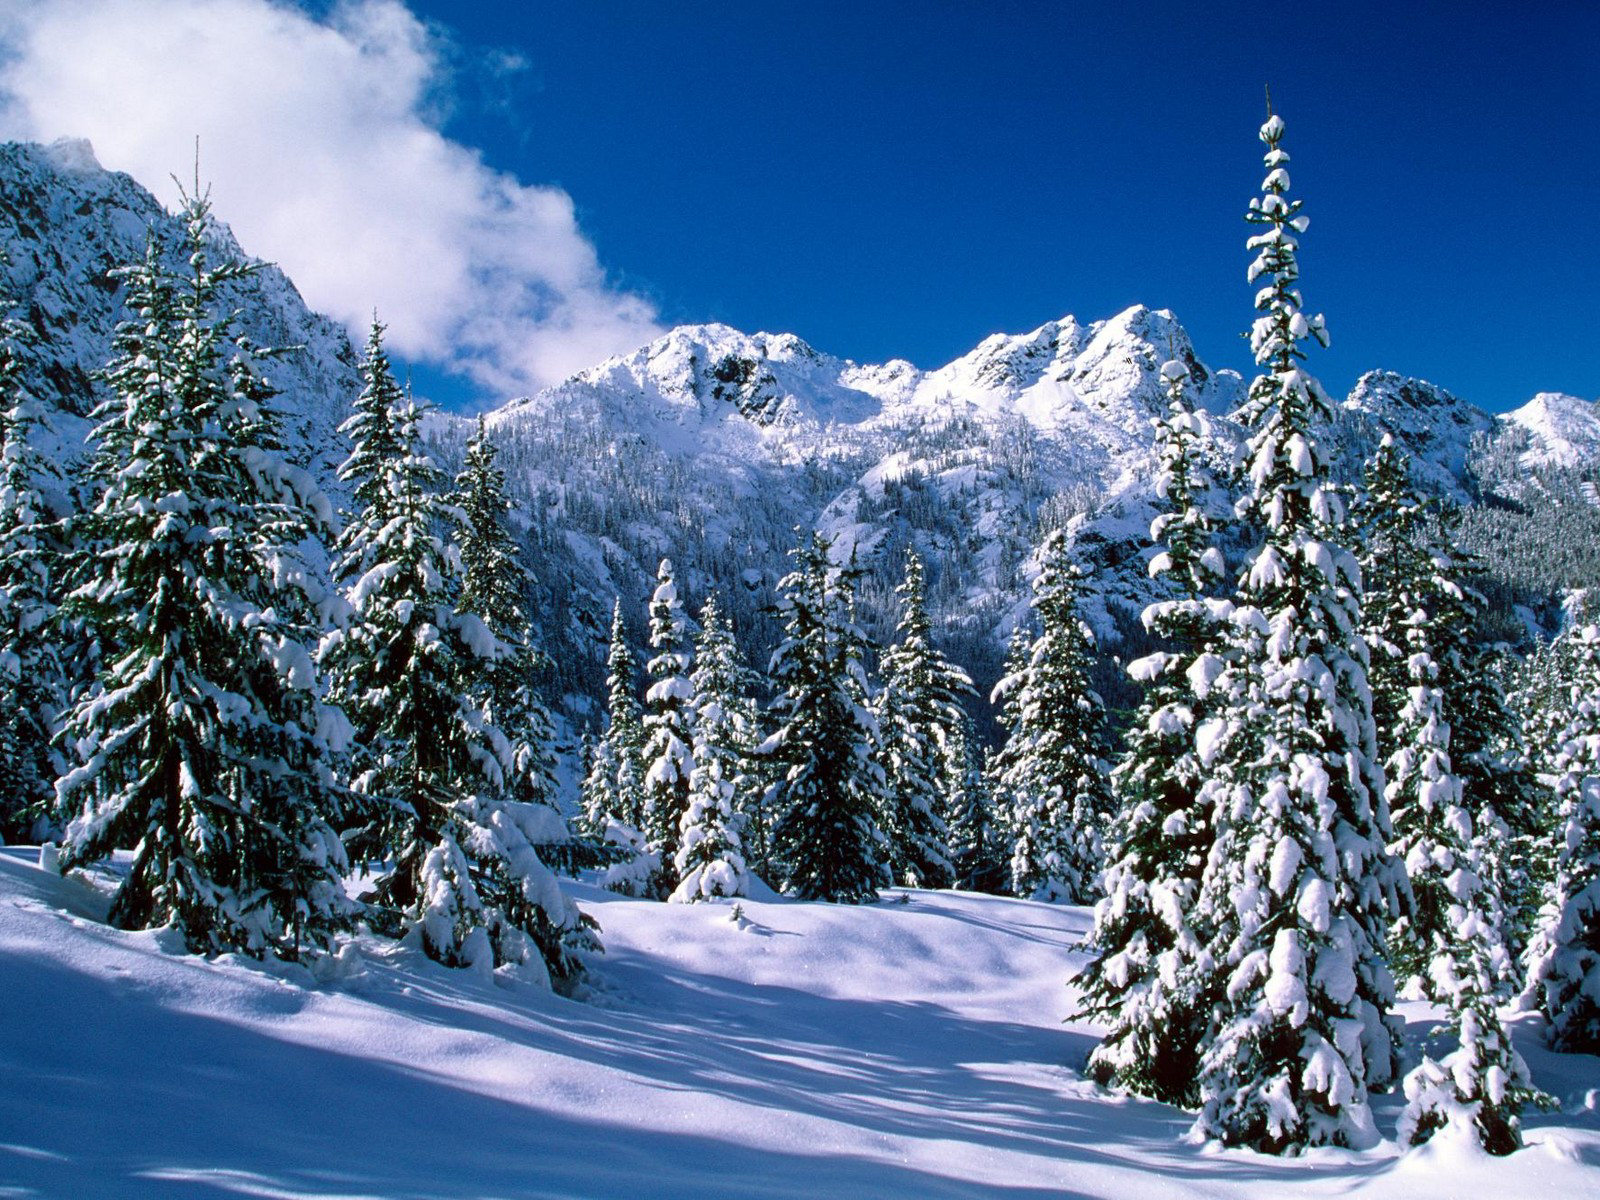 Snow Scenery Wallpaper   Viewing Gallery 1600x1200